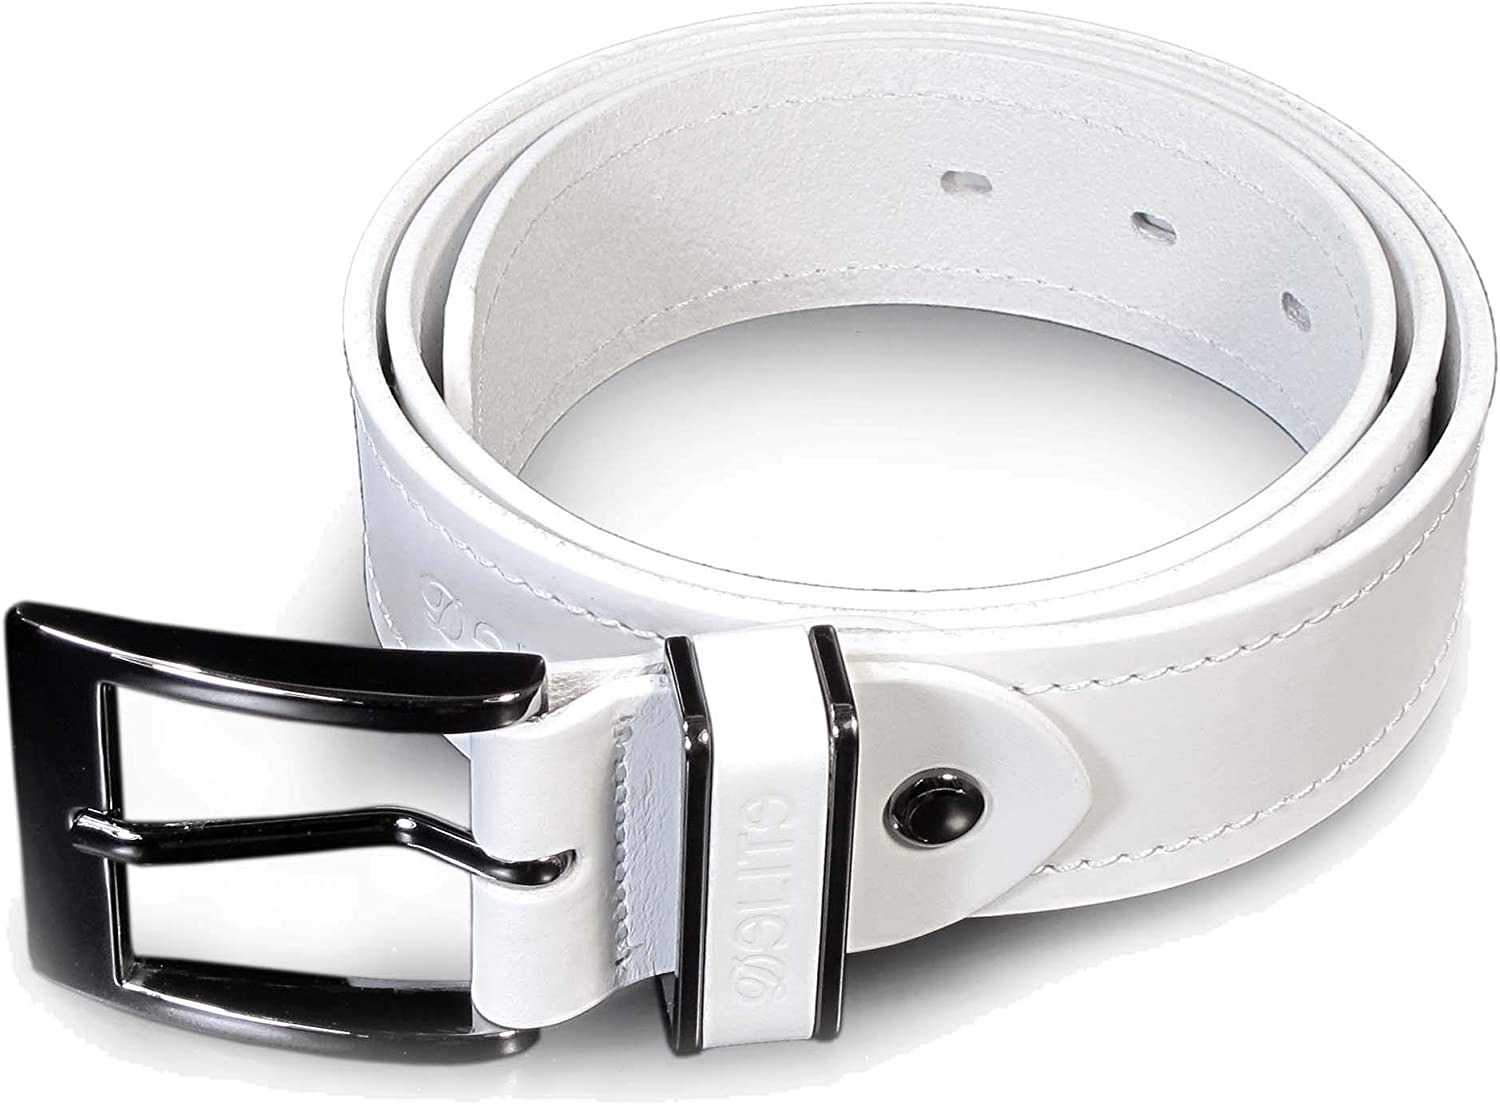 CM6 Mens Real Genuine Leather White Belt 1.5 Wide S-XL Thick Long Casual Jeans